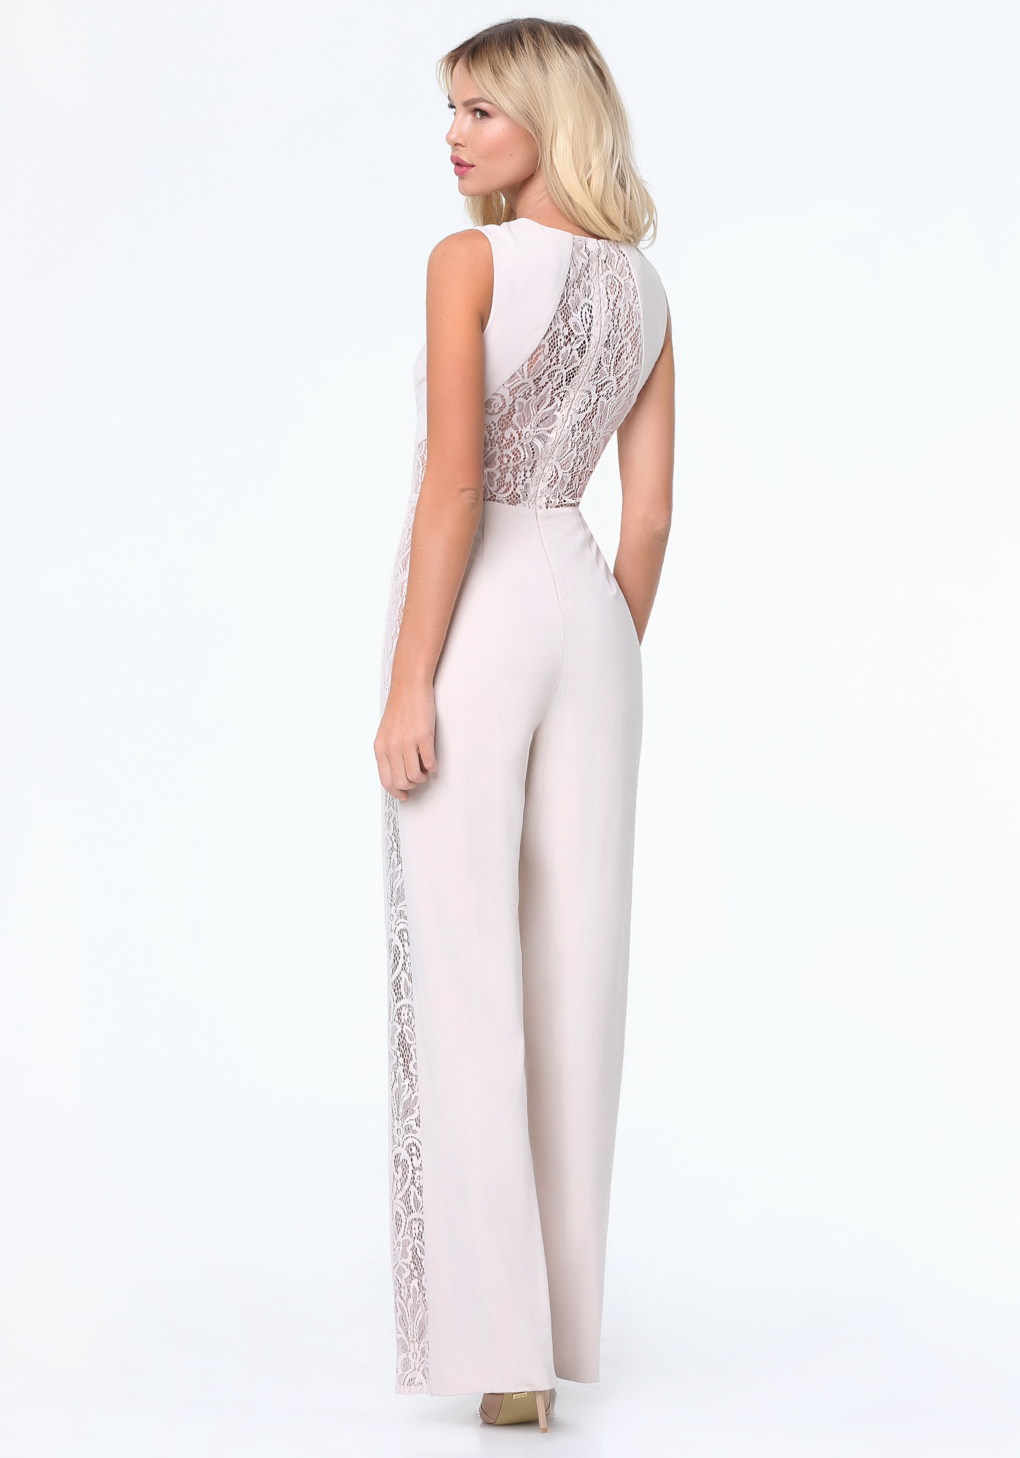 b055bf6526b Lyst - Bebe Lace Panel Jumpsuit in White